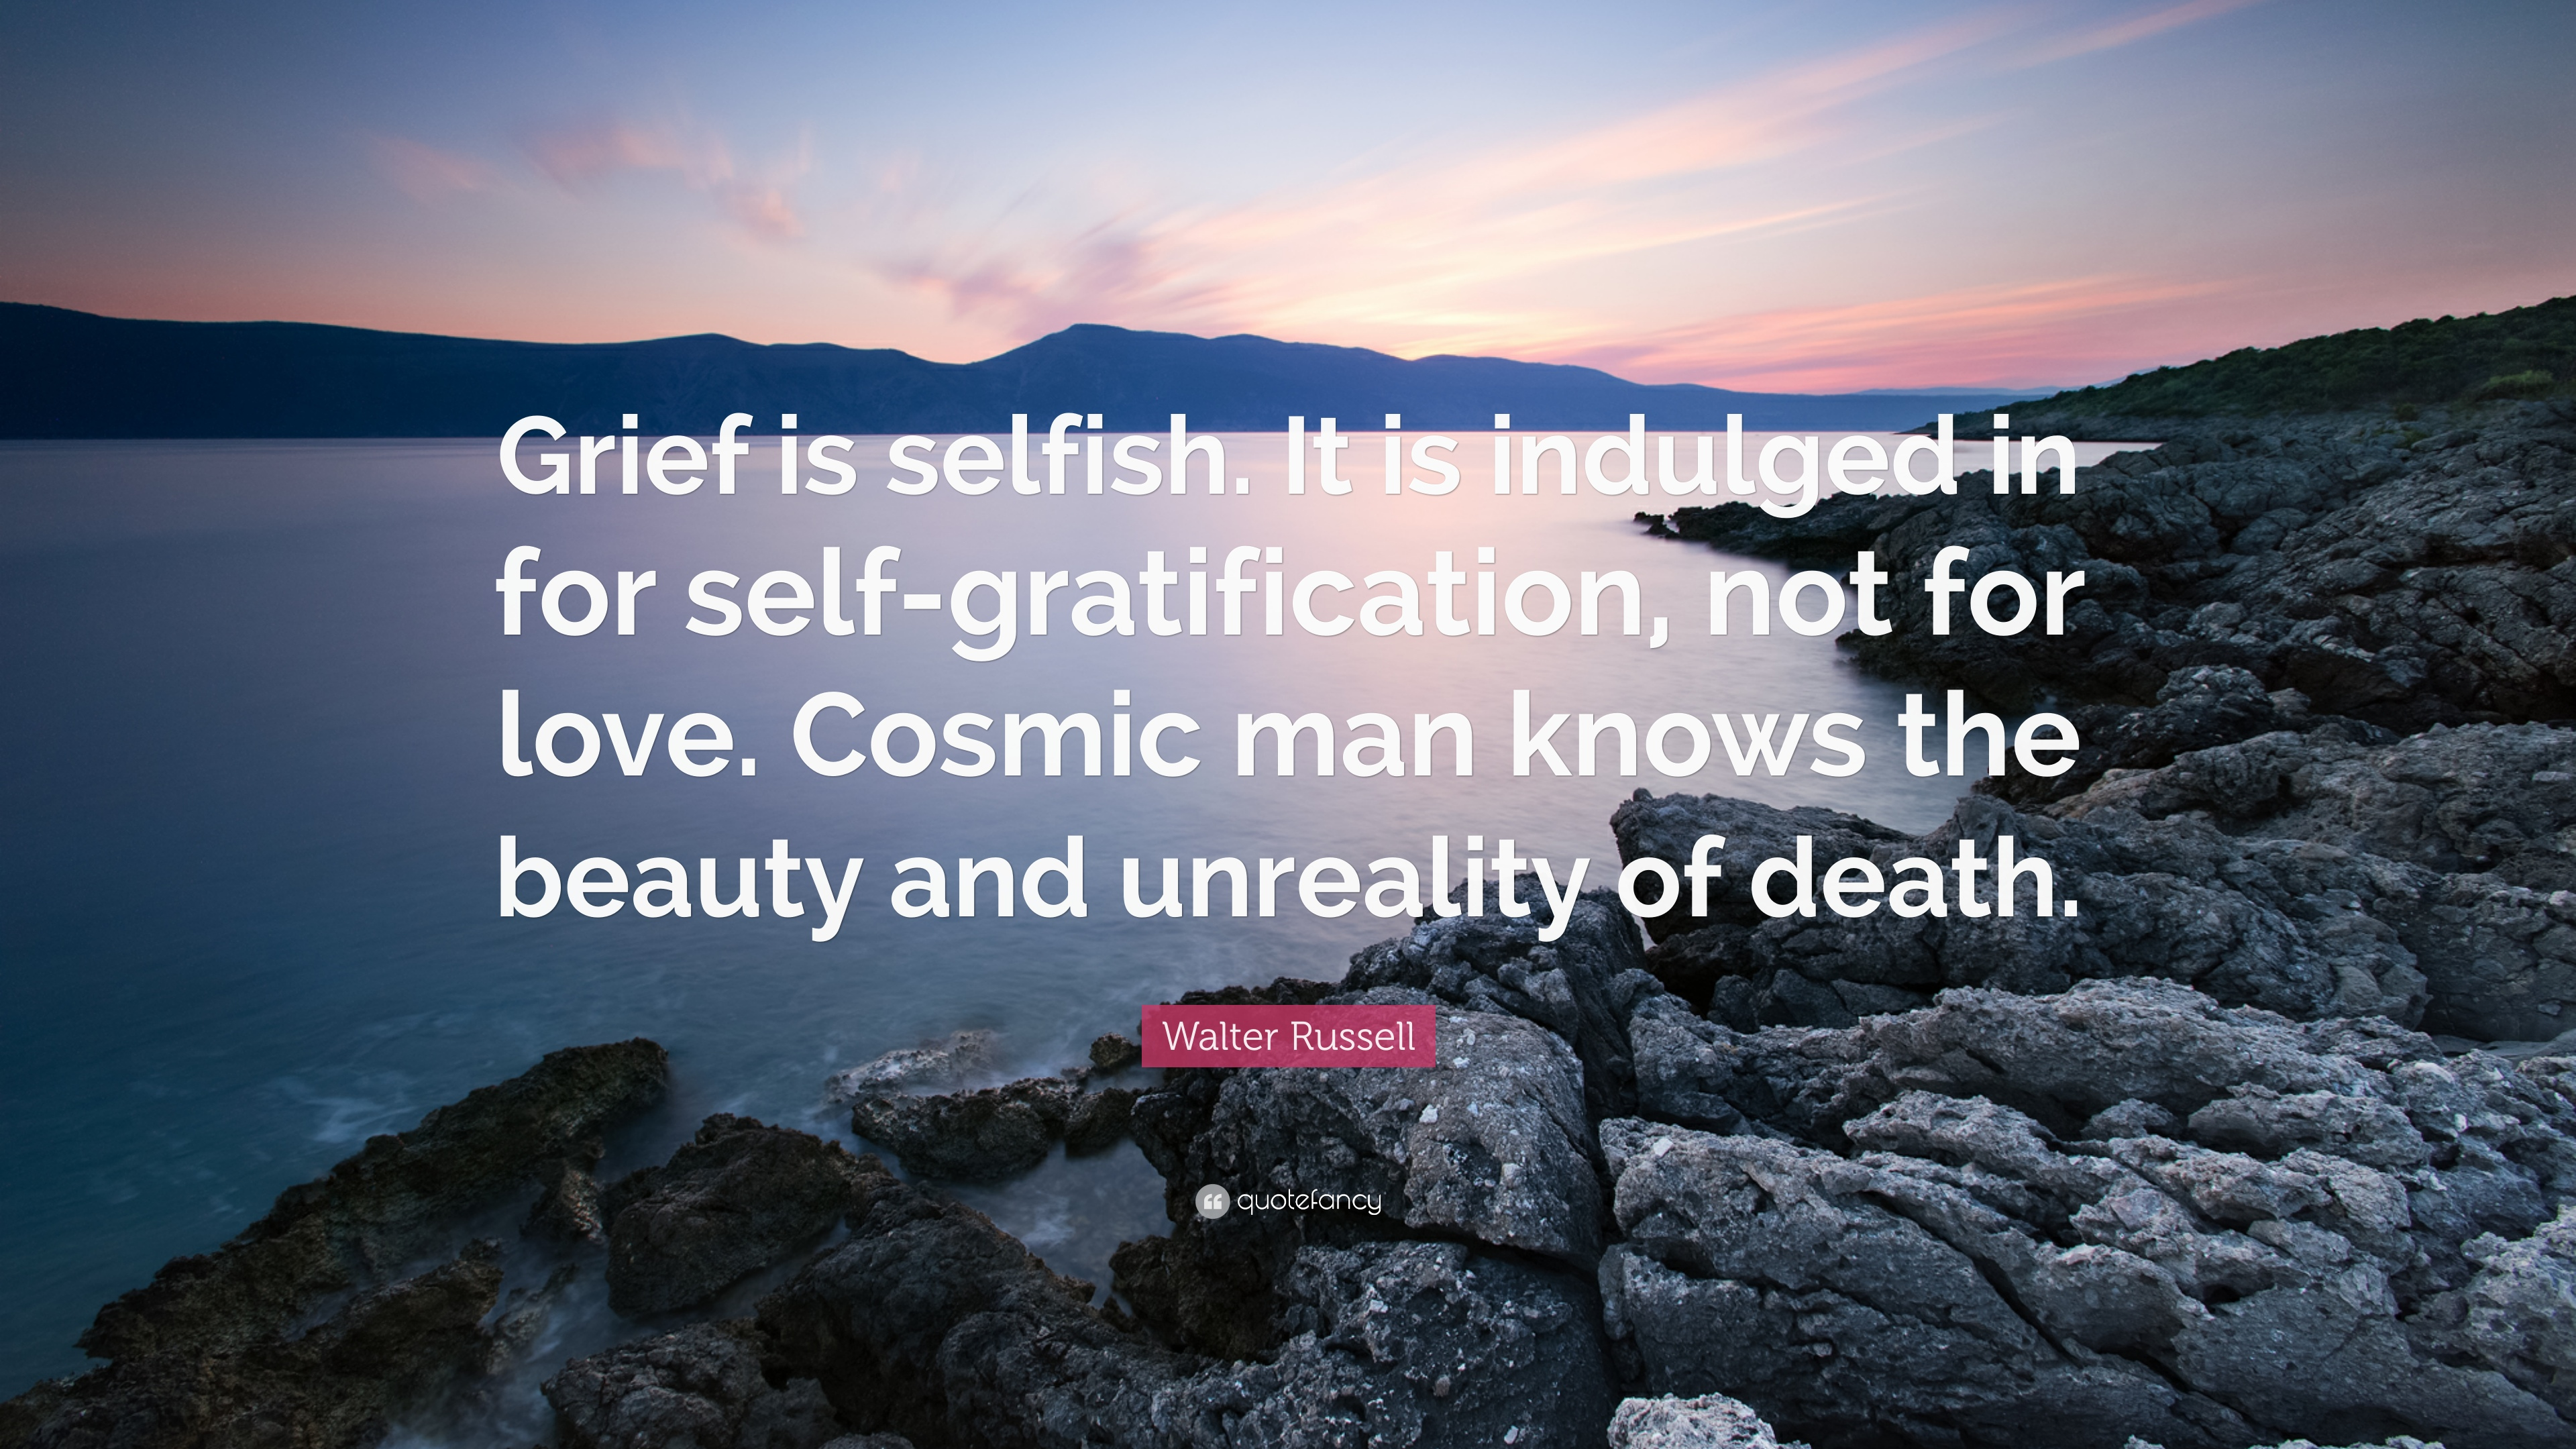 John Taylor While We Are Mourning The Loss Of Our: Walter Russell Quotes (90 Wallpapers)